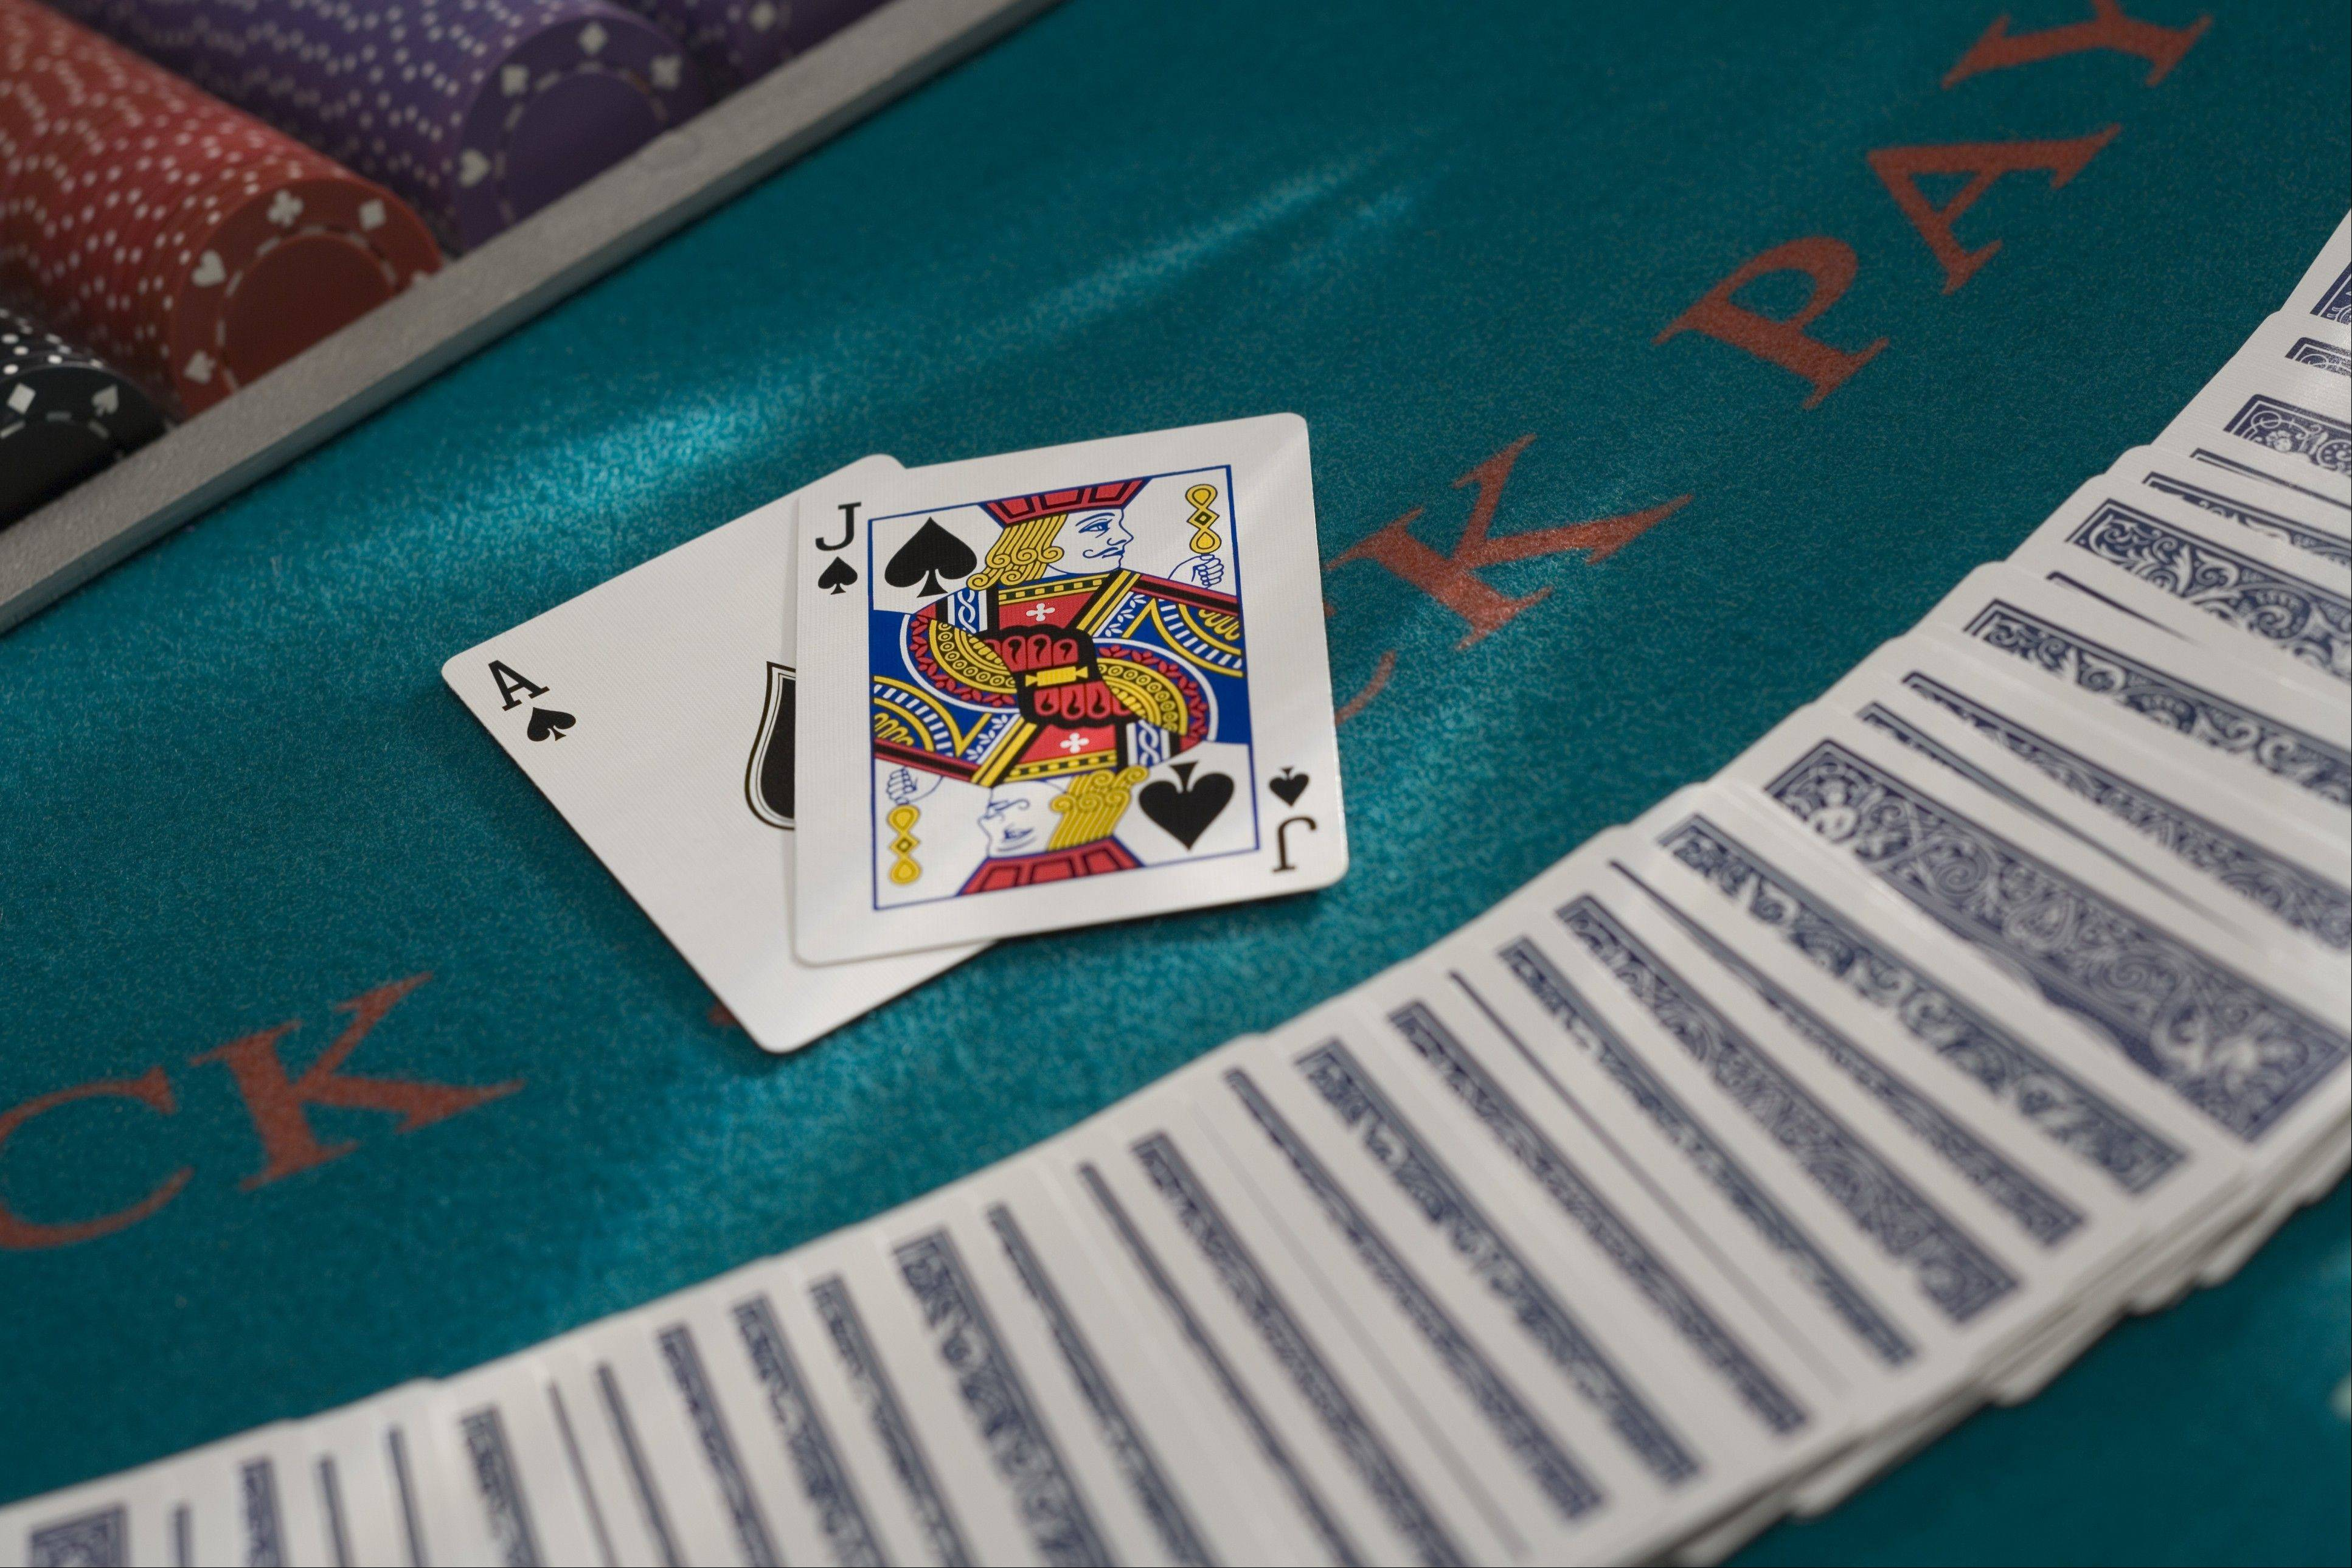 New legislation would allow Illinoisans to gamble on the Internet through games like blackjack.